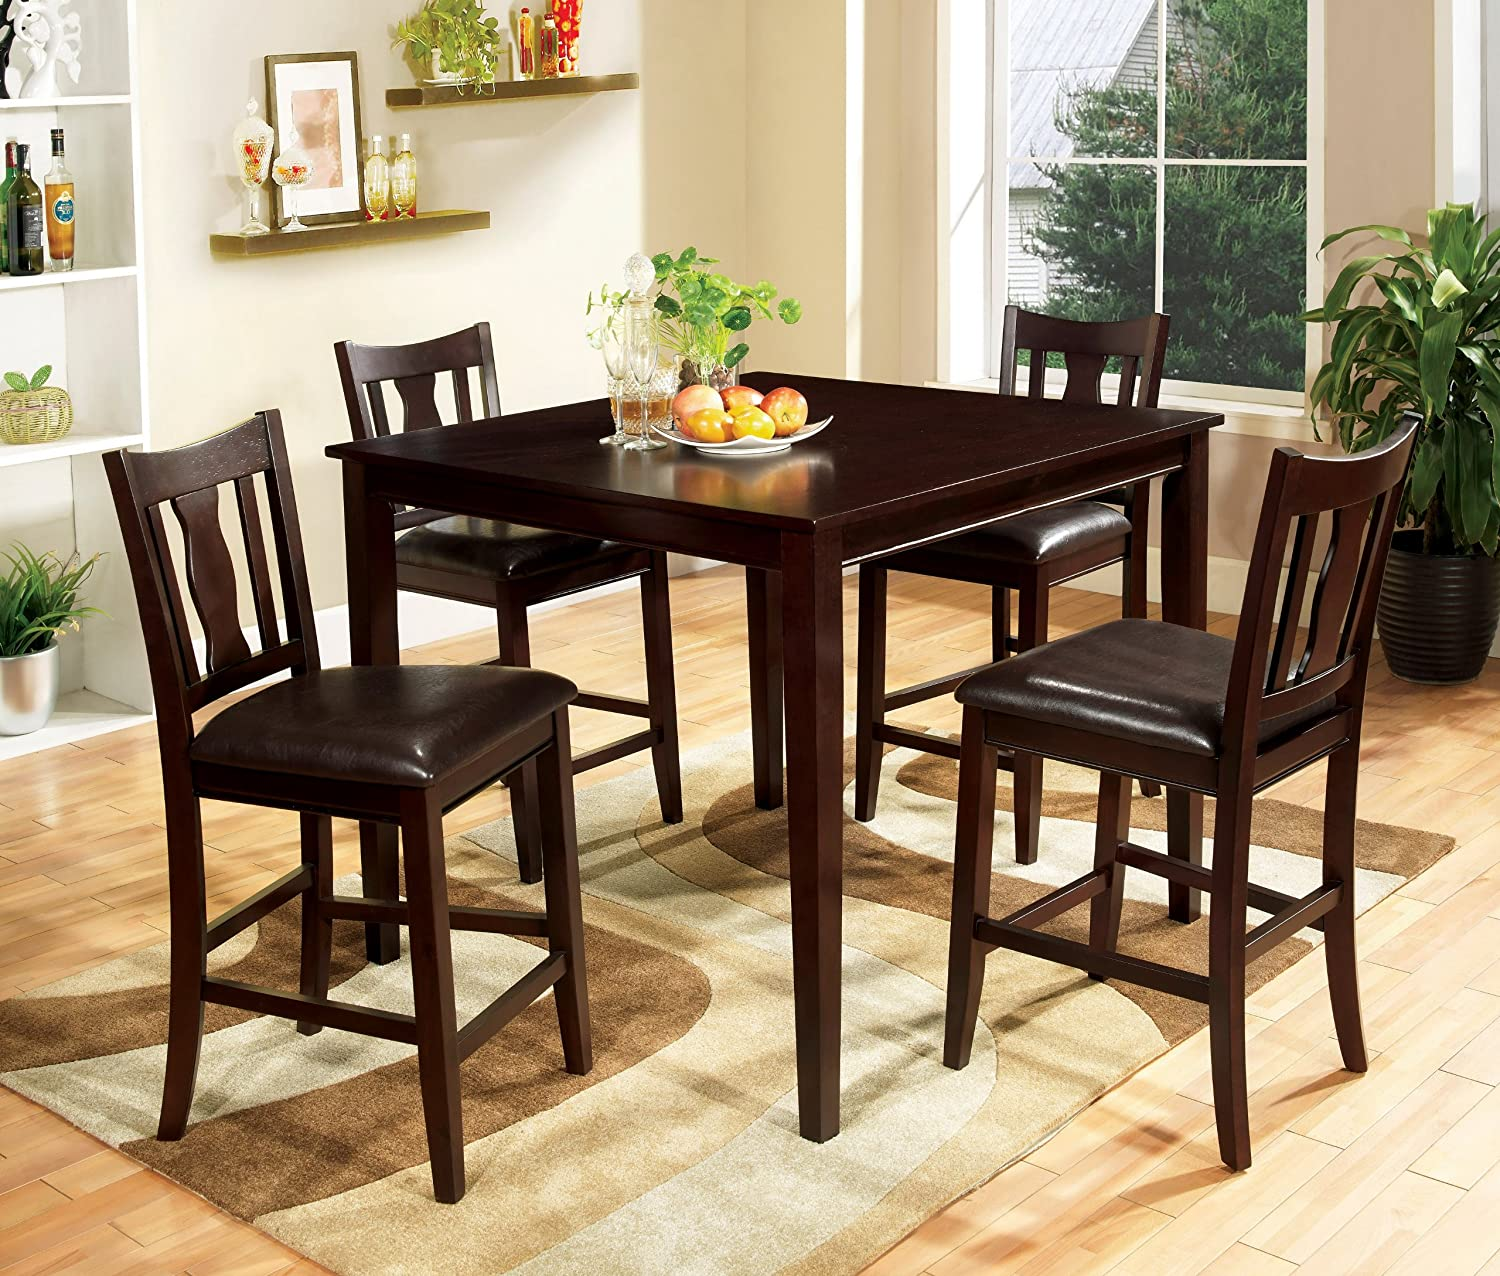 Counter height round table and chairs - Amazon Com Furniture Of America Marion 5 Piece Solid Wood Counter Height Dining Set Espresso Table Chair Sets